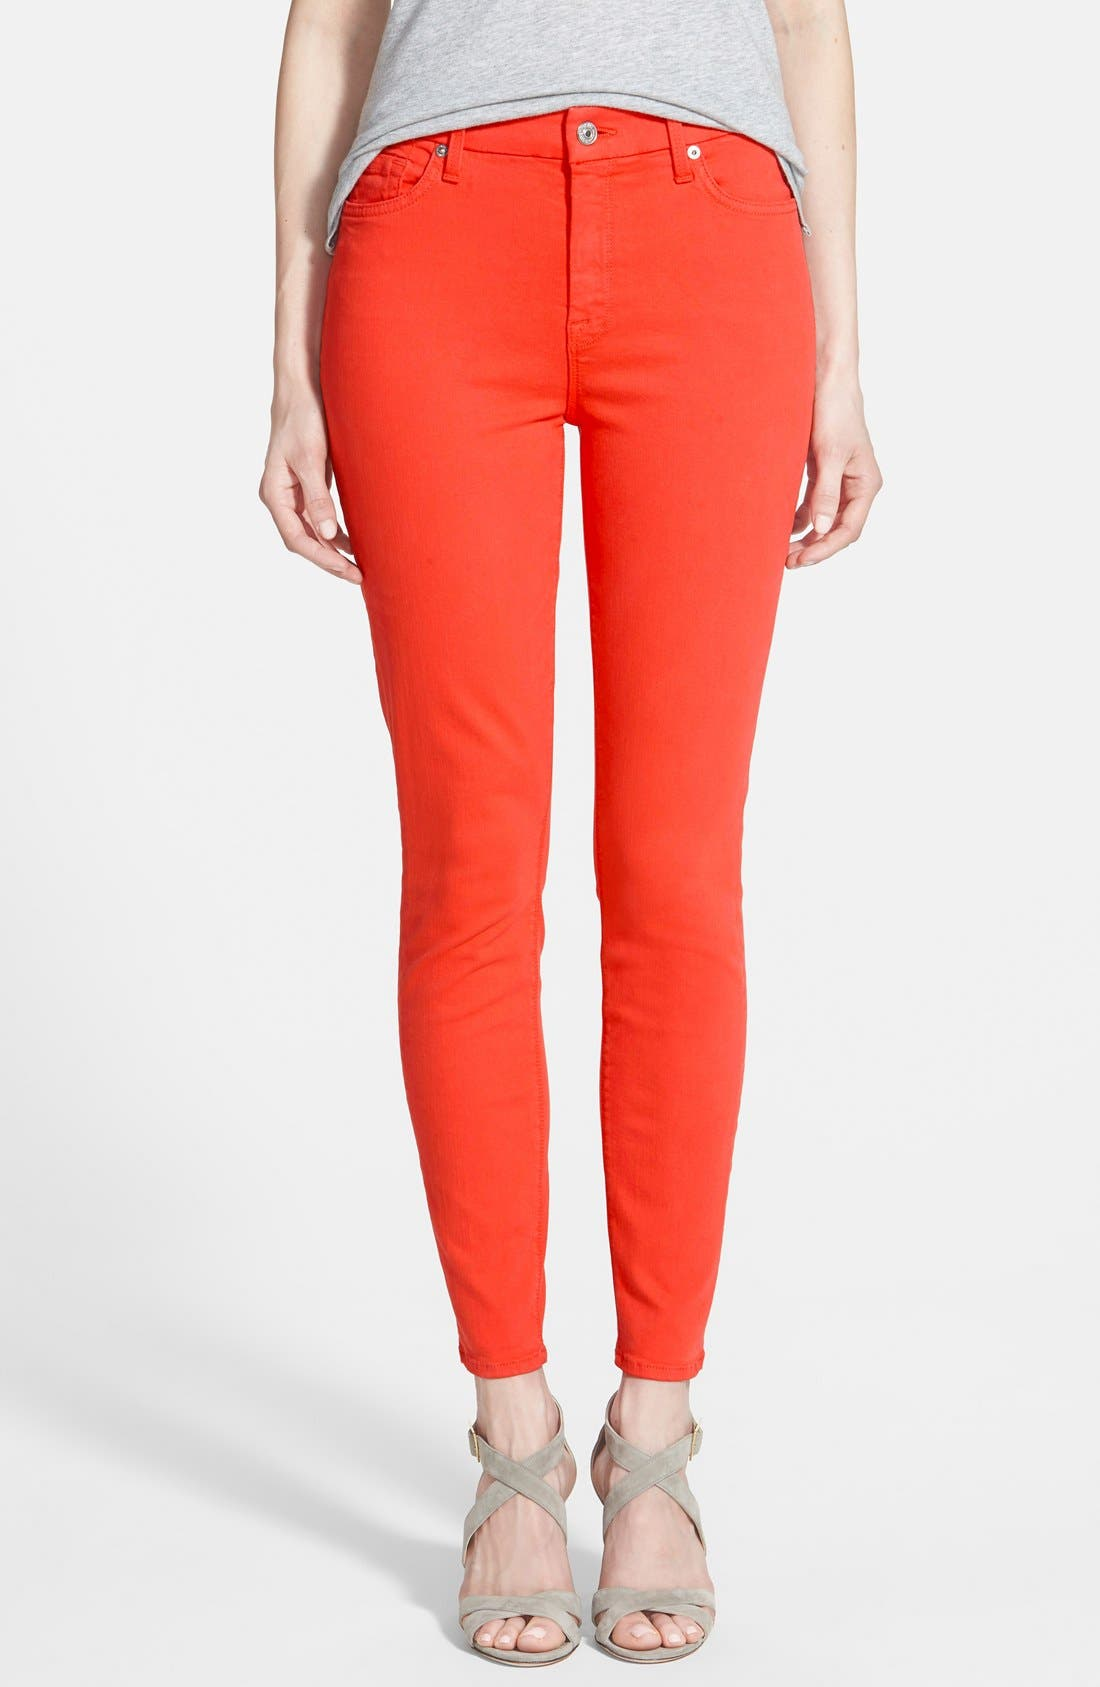 Alternate Image 1 Selected - 7 For All Mankind® High Rise Ankle Skinny Jeans (California Poppy)